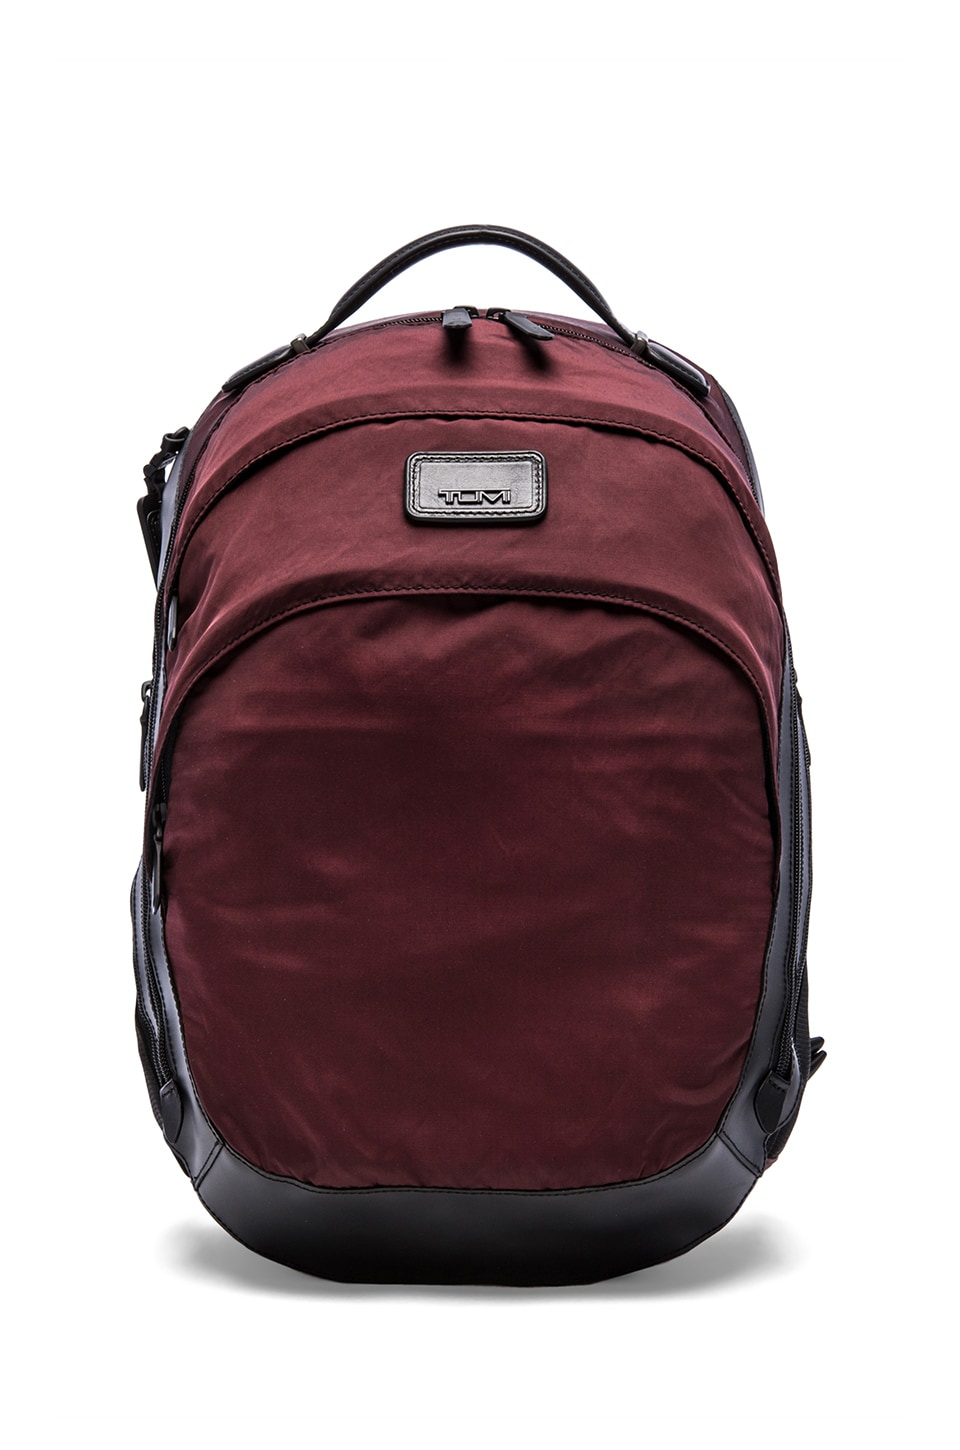 Tumi Virtue Diligence Backpack in Port